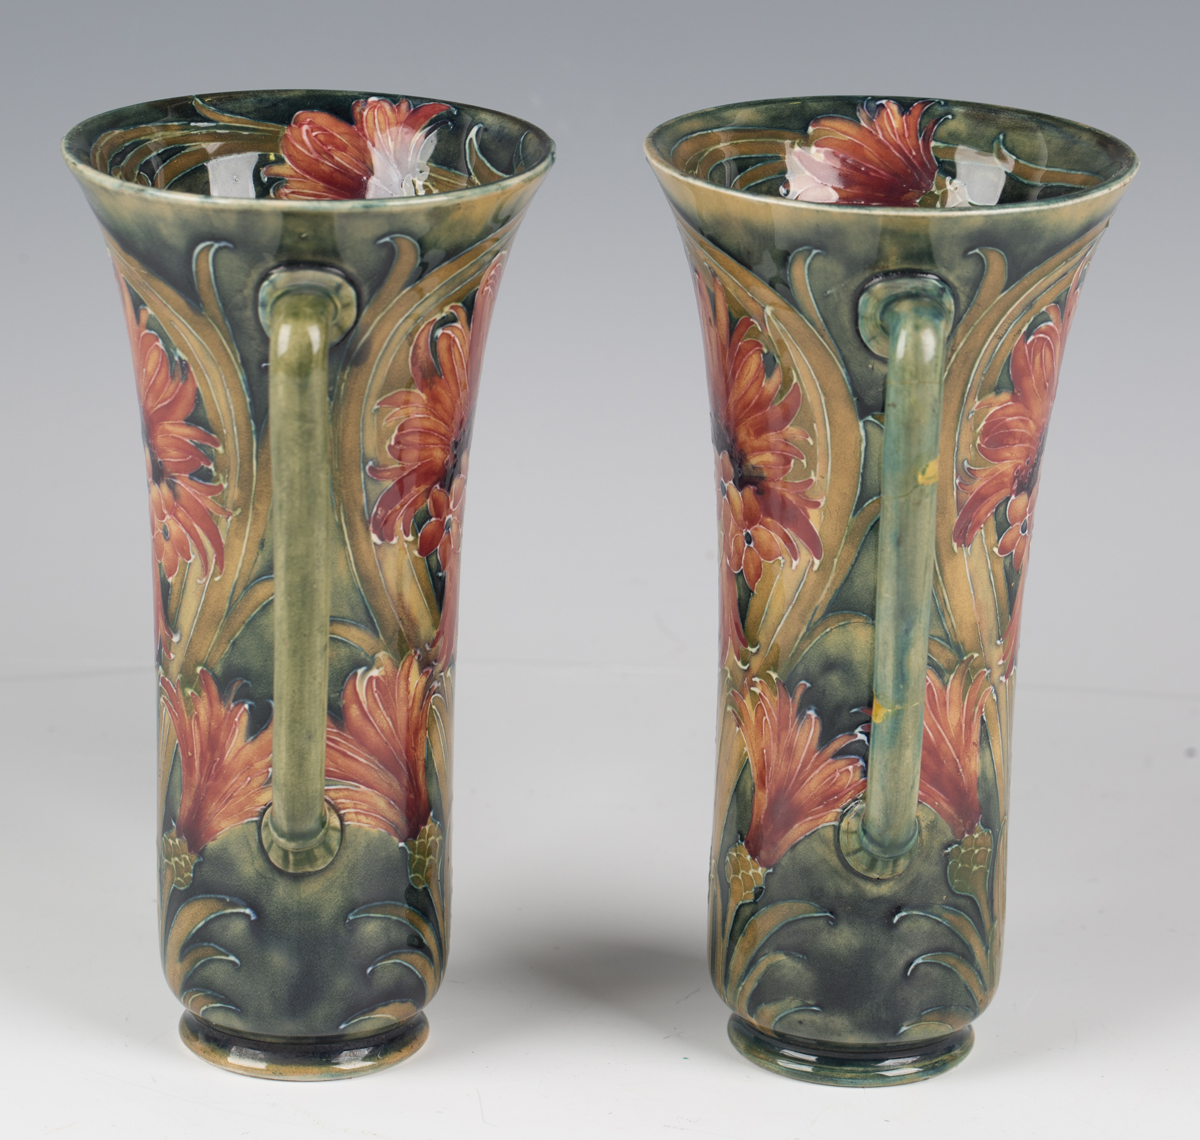 A pair of James Macintyre & Co two-handled pottery vases, circa 1910-13, designed by William - Image 7 of 9